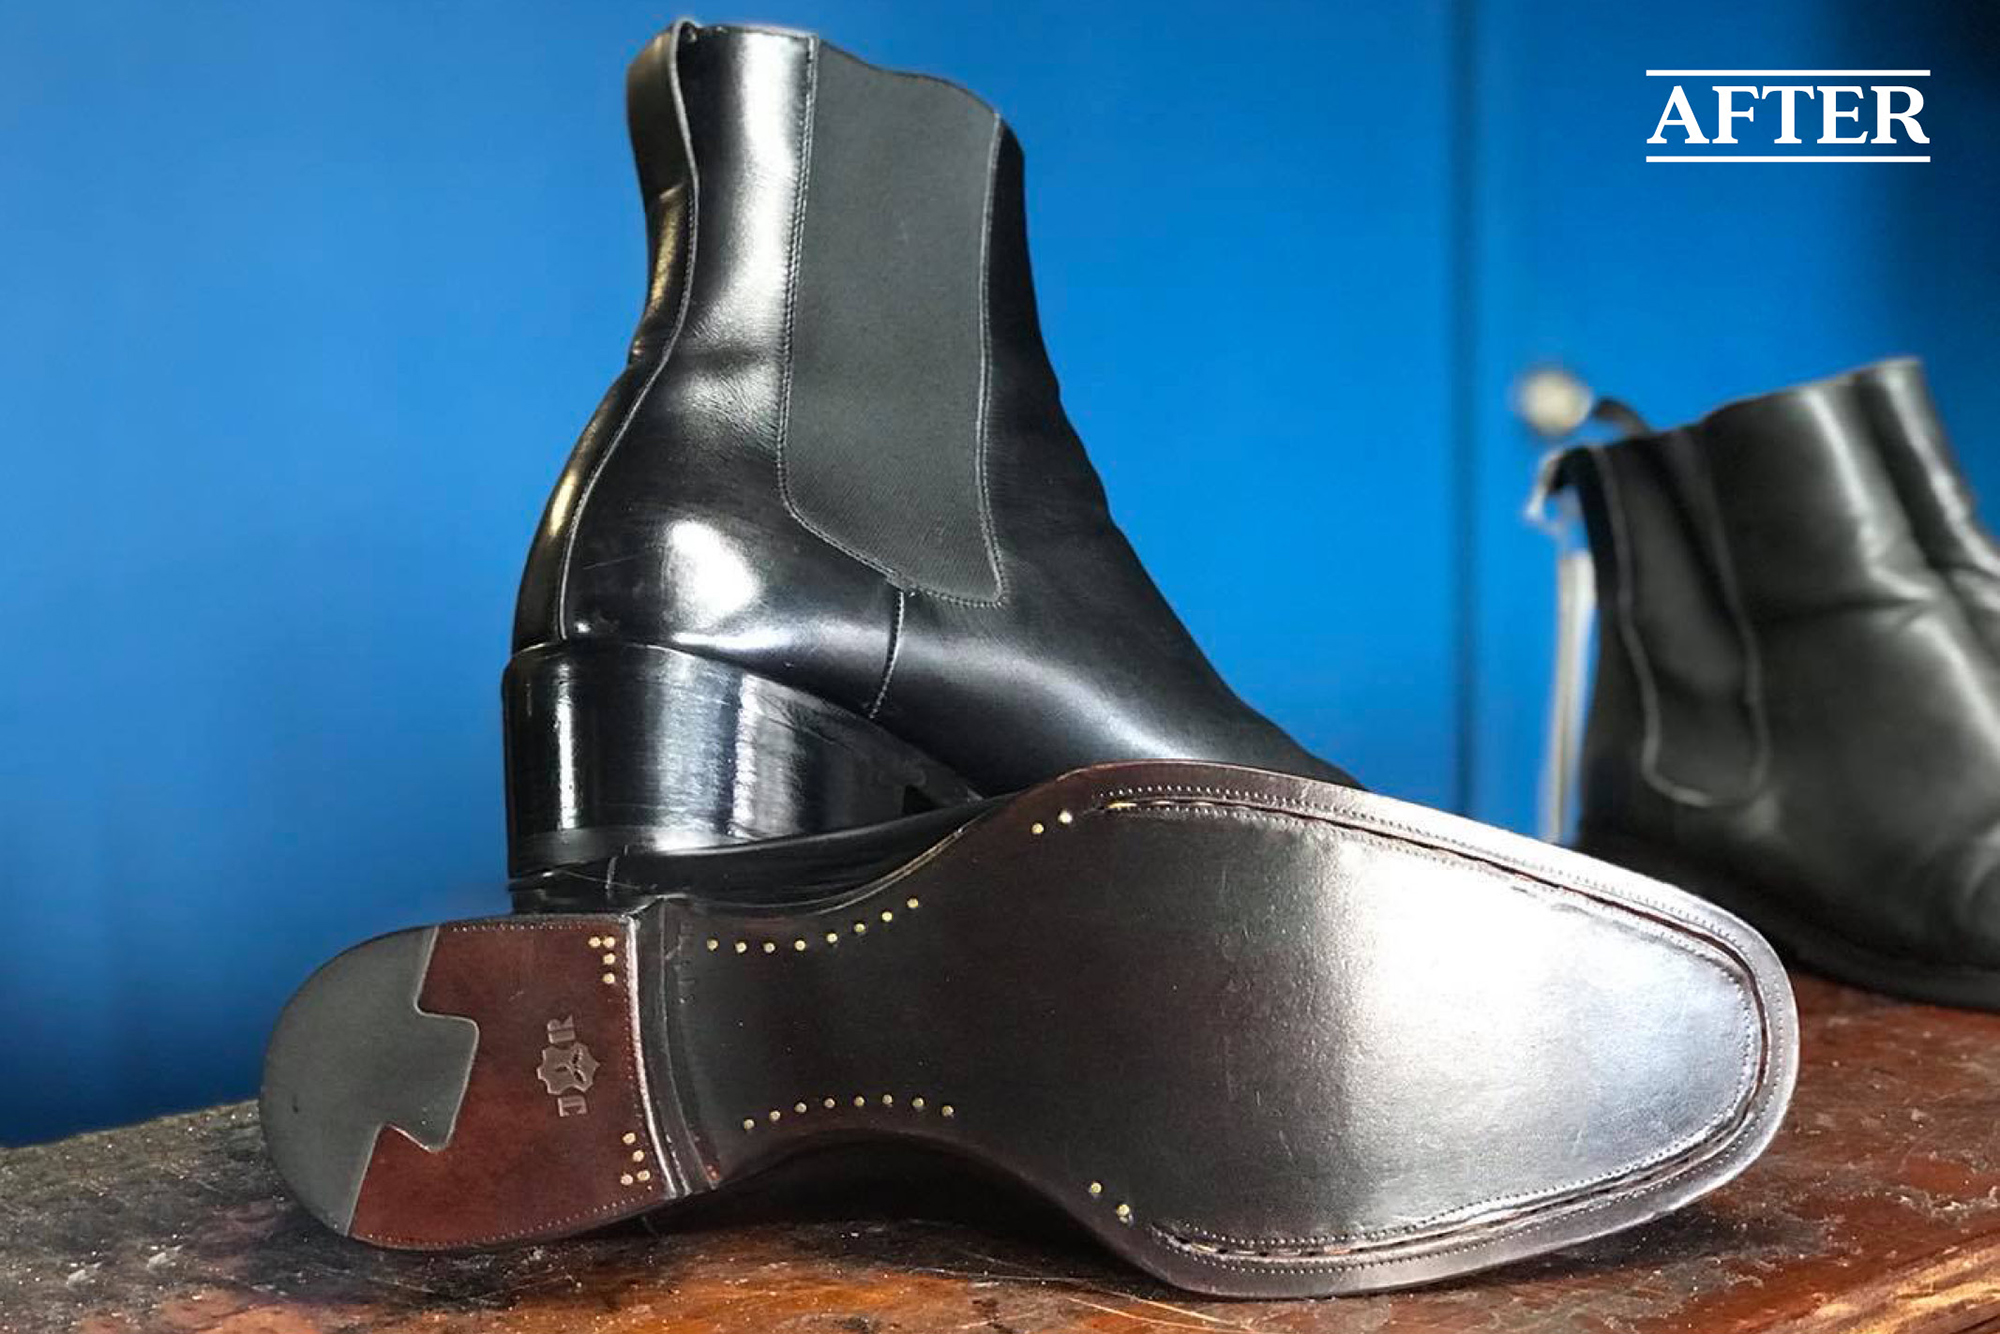 Tom Ford JR Rendenbach sole and dovetail heel after